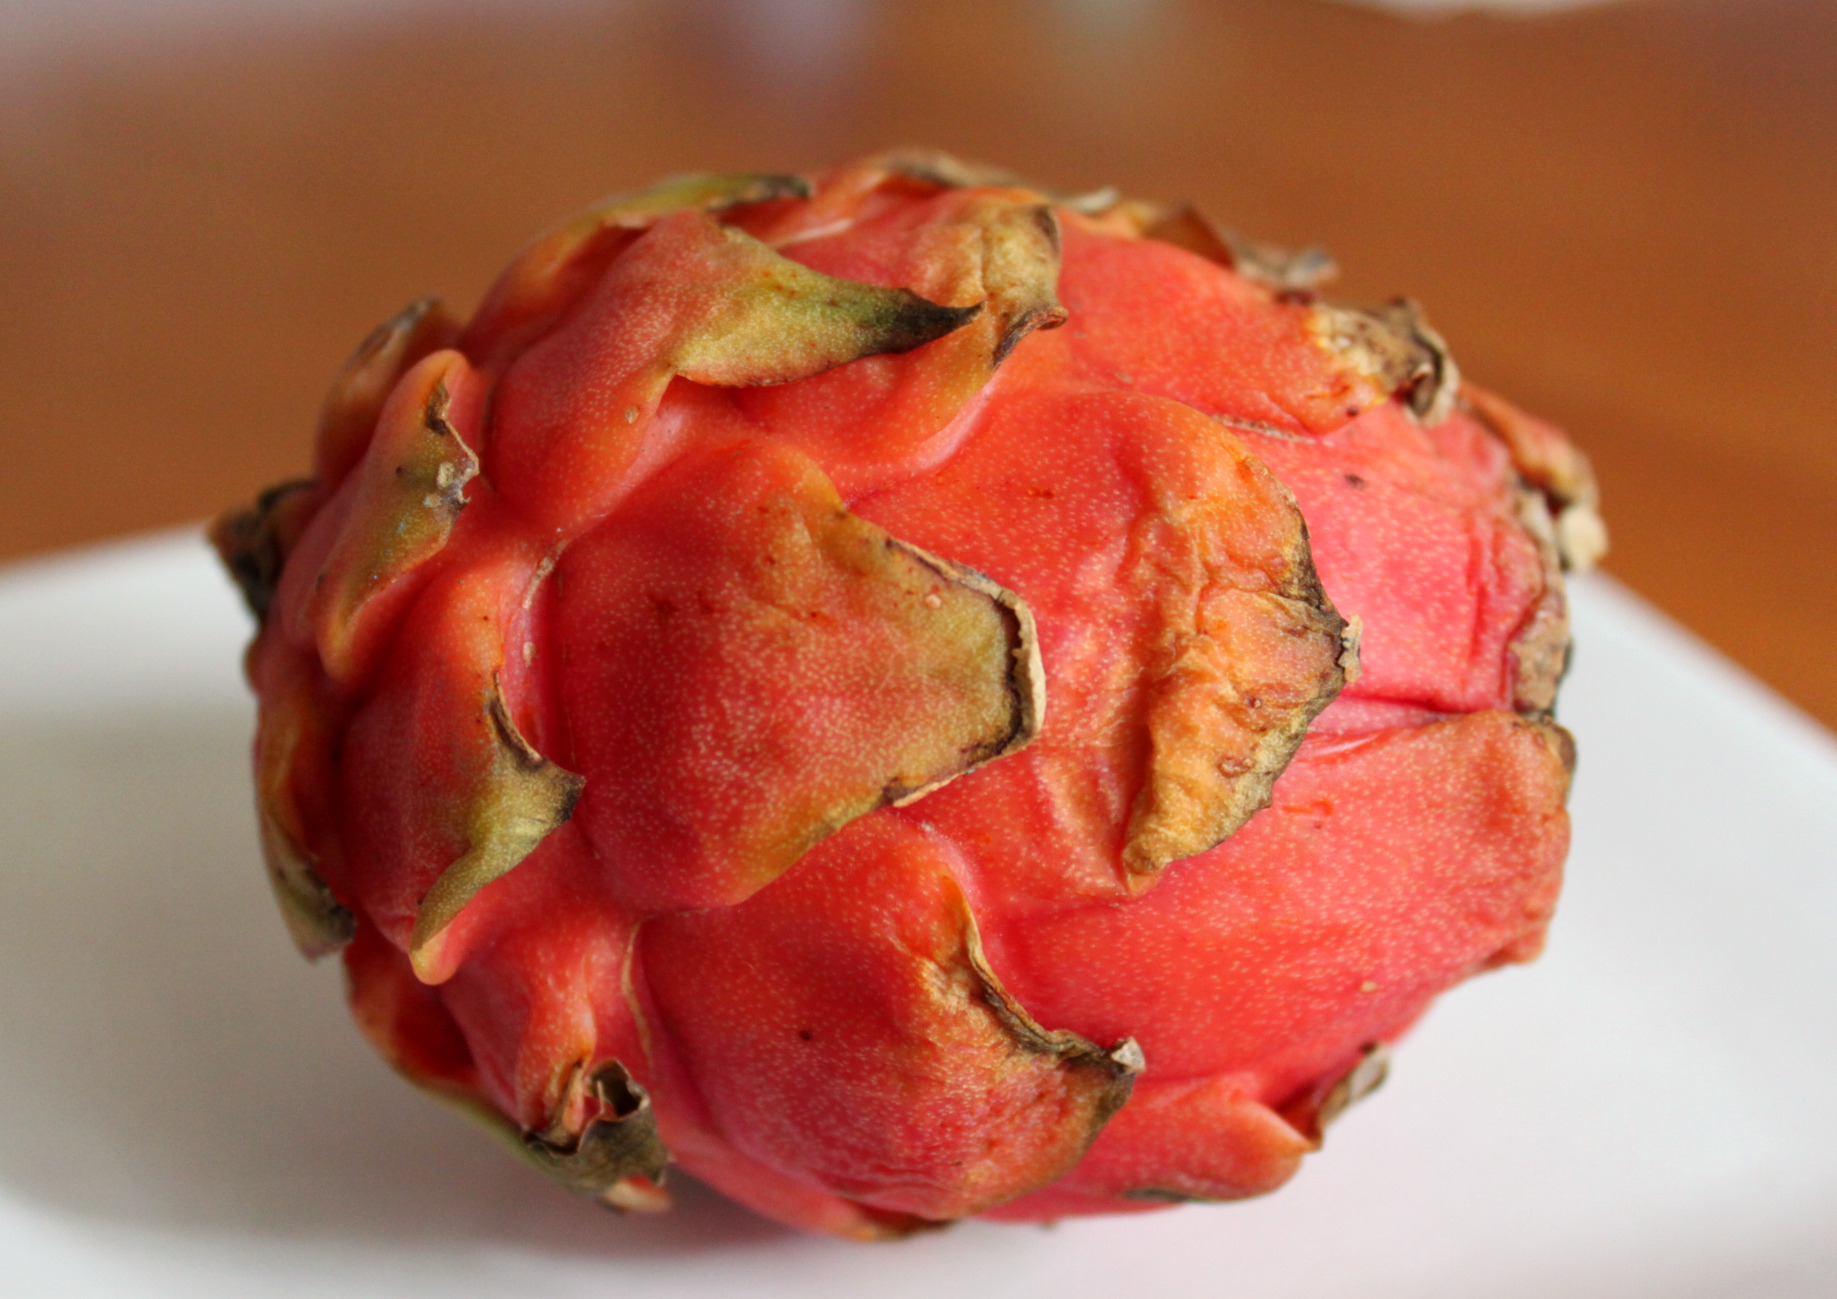 Dragon fruit comes in three colors white pink and red or magenta white - Inside The Inedible Outer Skin You Will Find Either White Or Magenta